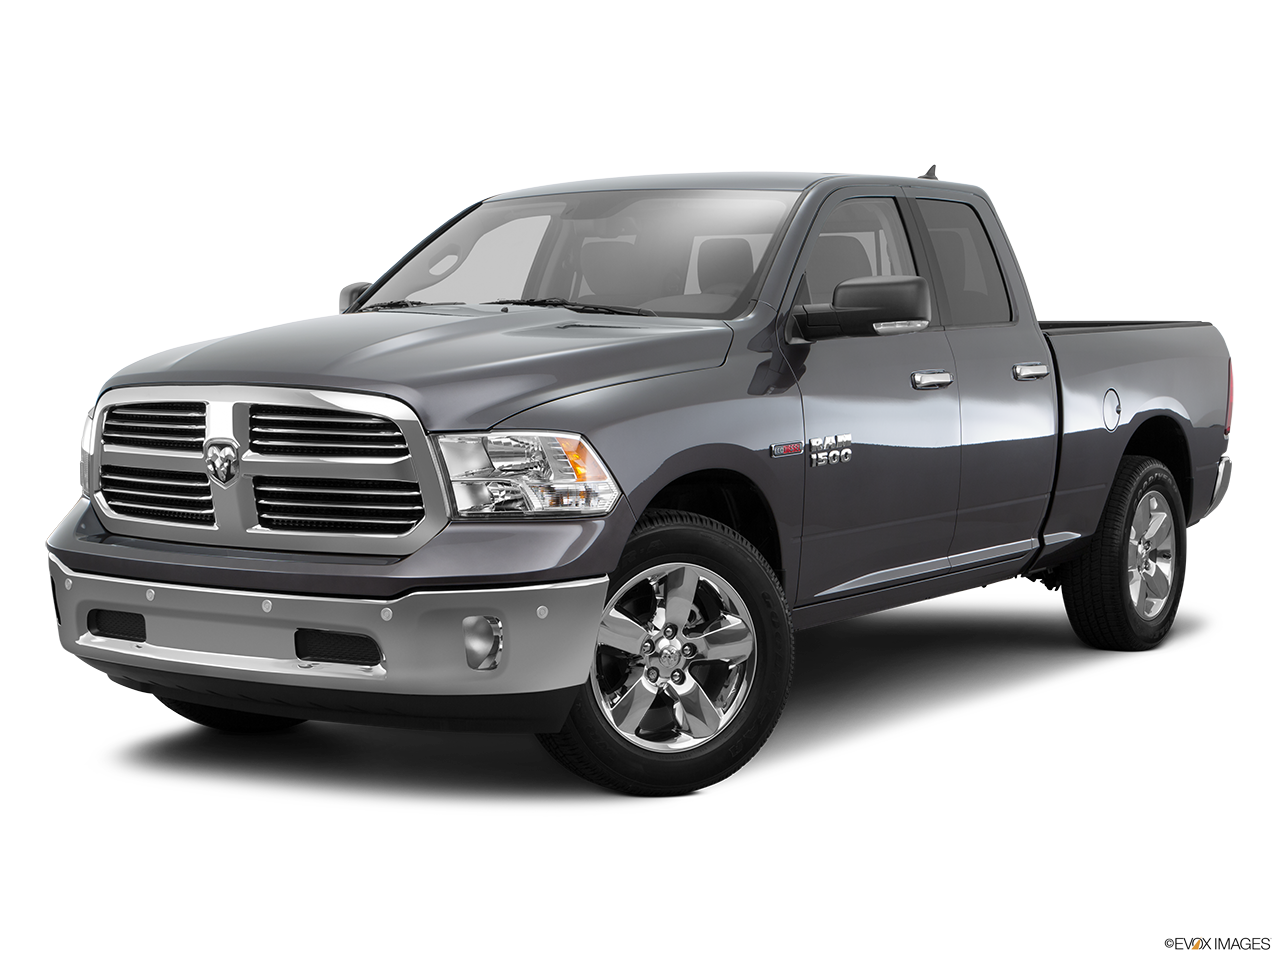 Test Drive A 2016 RAM 1500 at My Jeep Chrysler Dodge RAM in Salinas